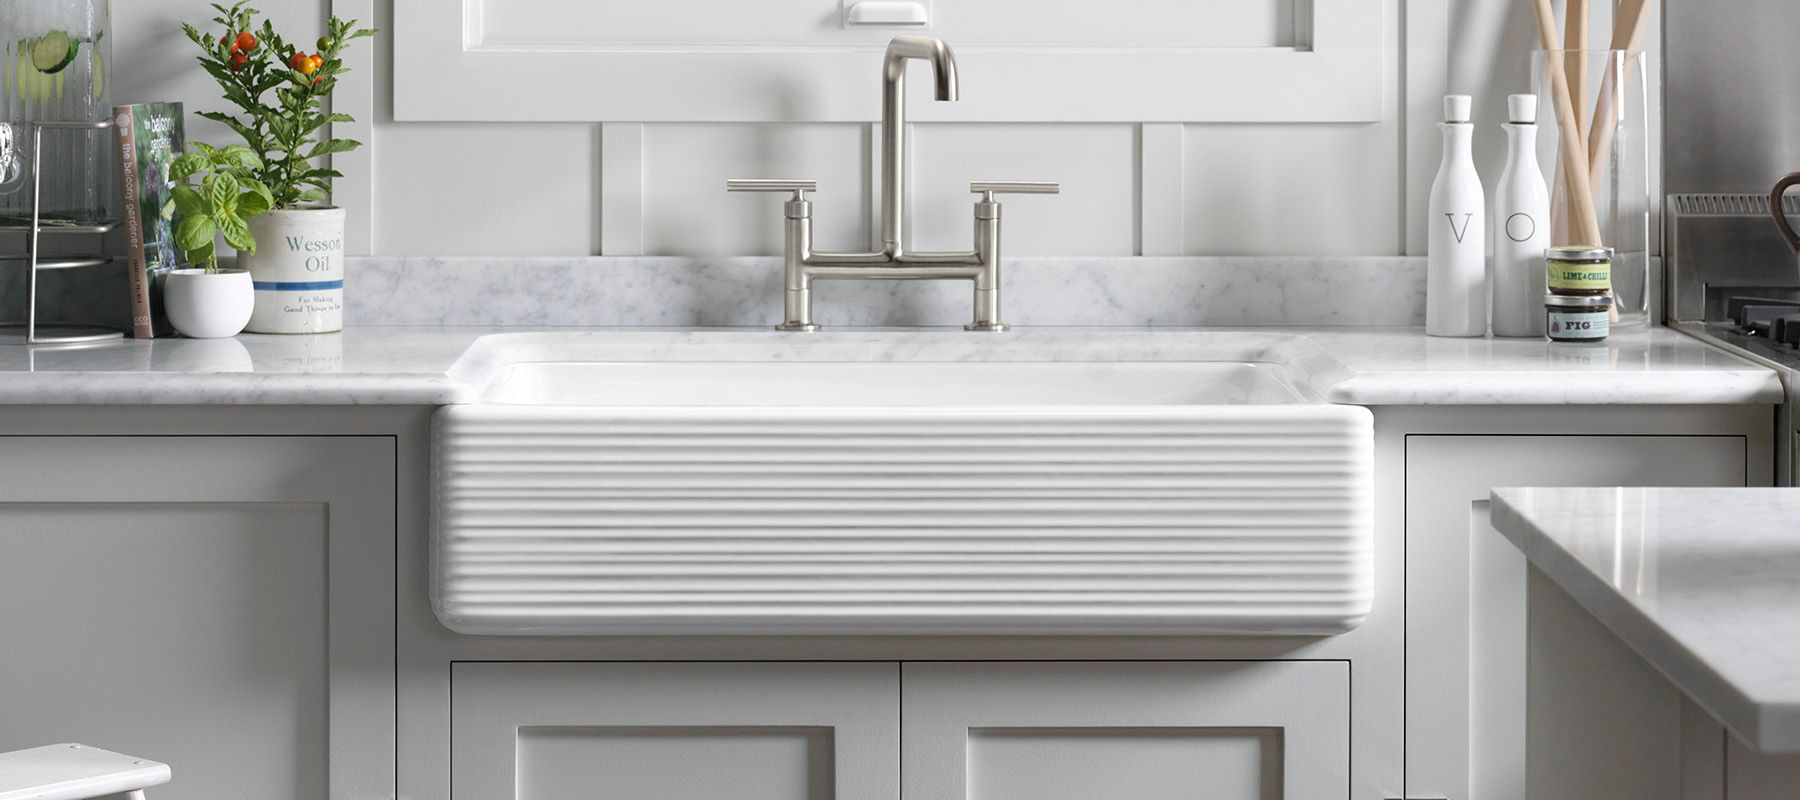 Undermount Kitchen Sinks Unique Undermount Kitchen Sinks  Kitchen  Kohler Review